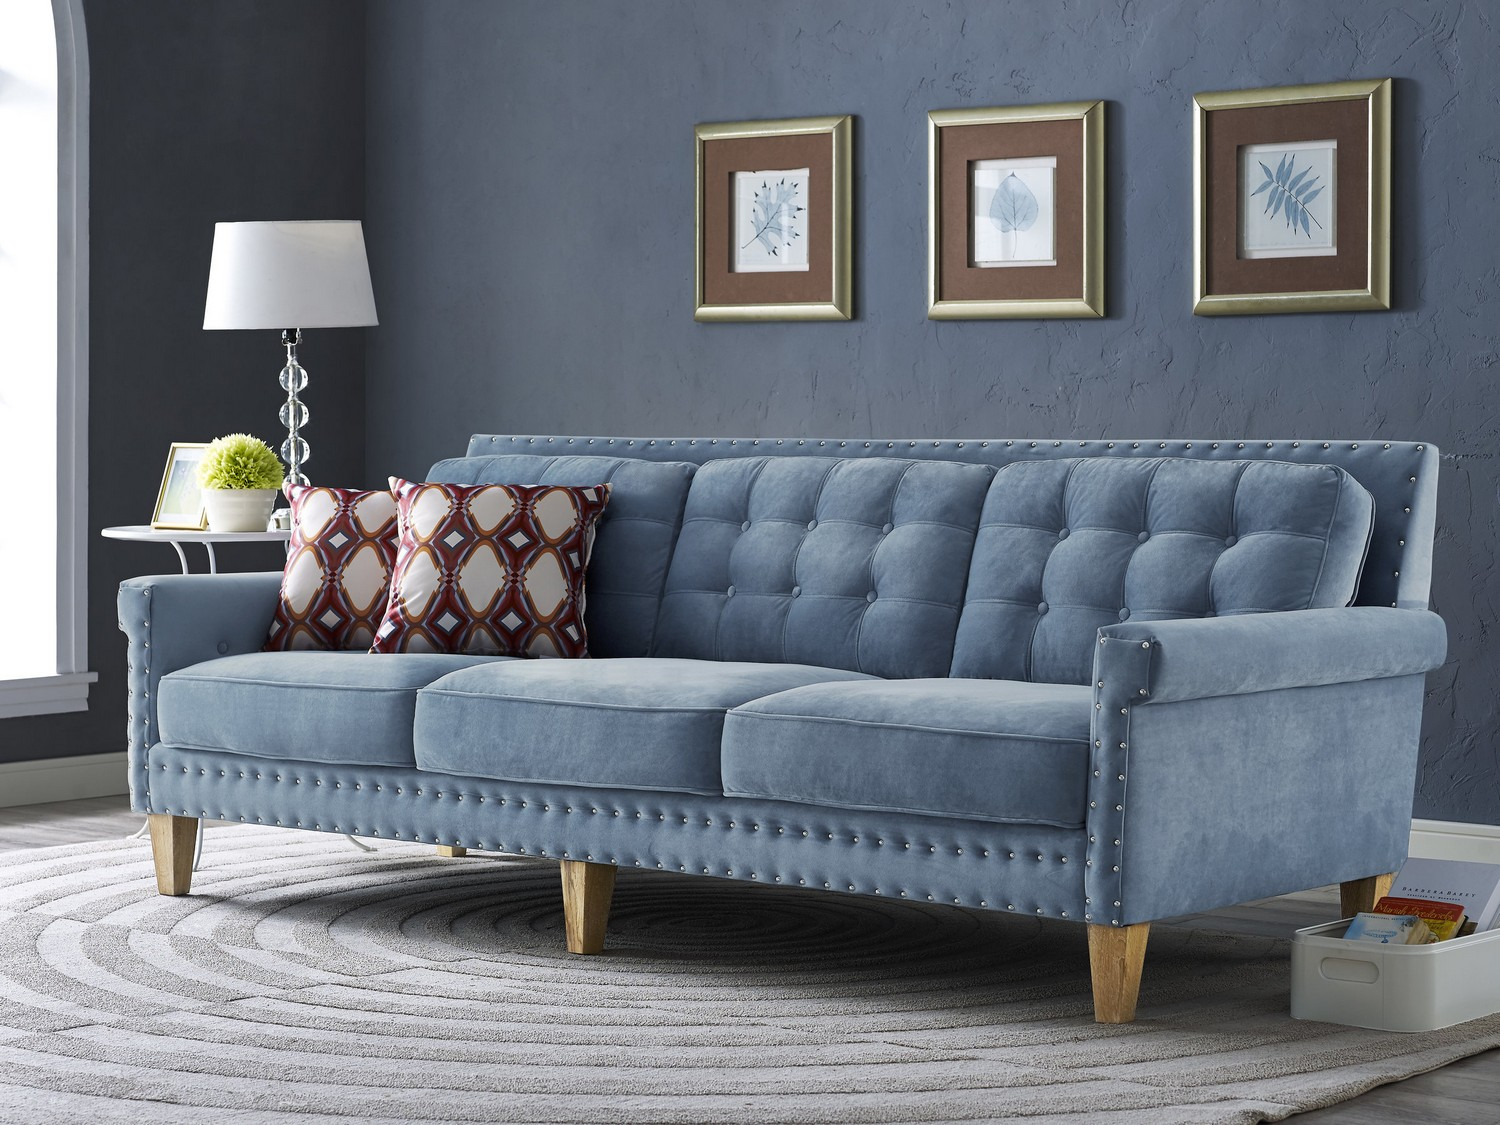 Tov Furniture Jonathan Blue Velvet Sofa S75 At Homelement Com